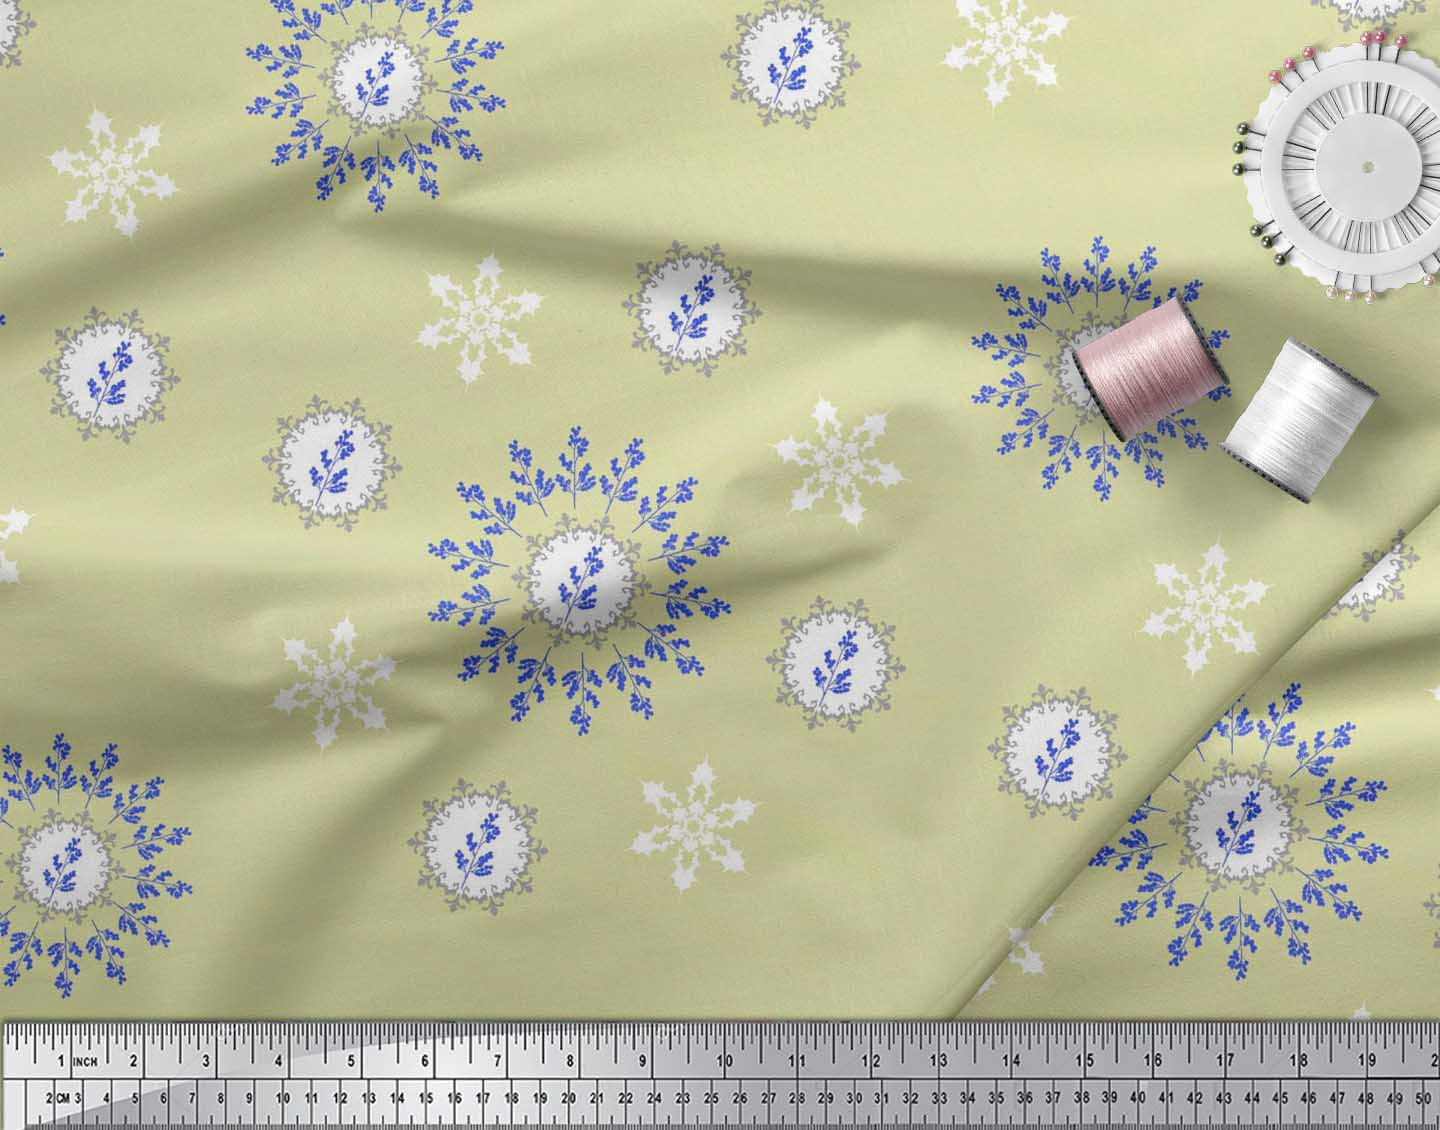 Soimoi-Fabric-Berries-amp-Damask-Decorative-Printed-Craft-Fabric-bty-DC-513A thumbnail 25